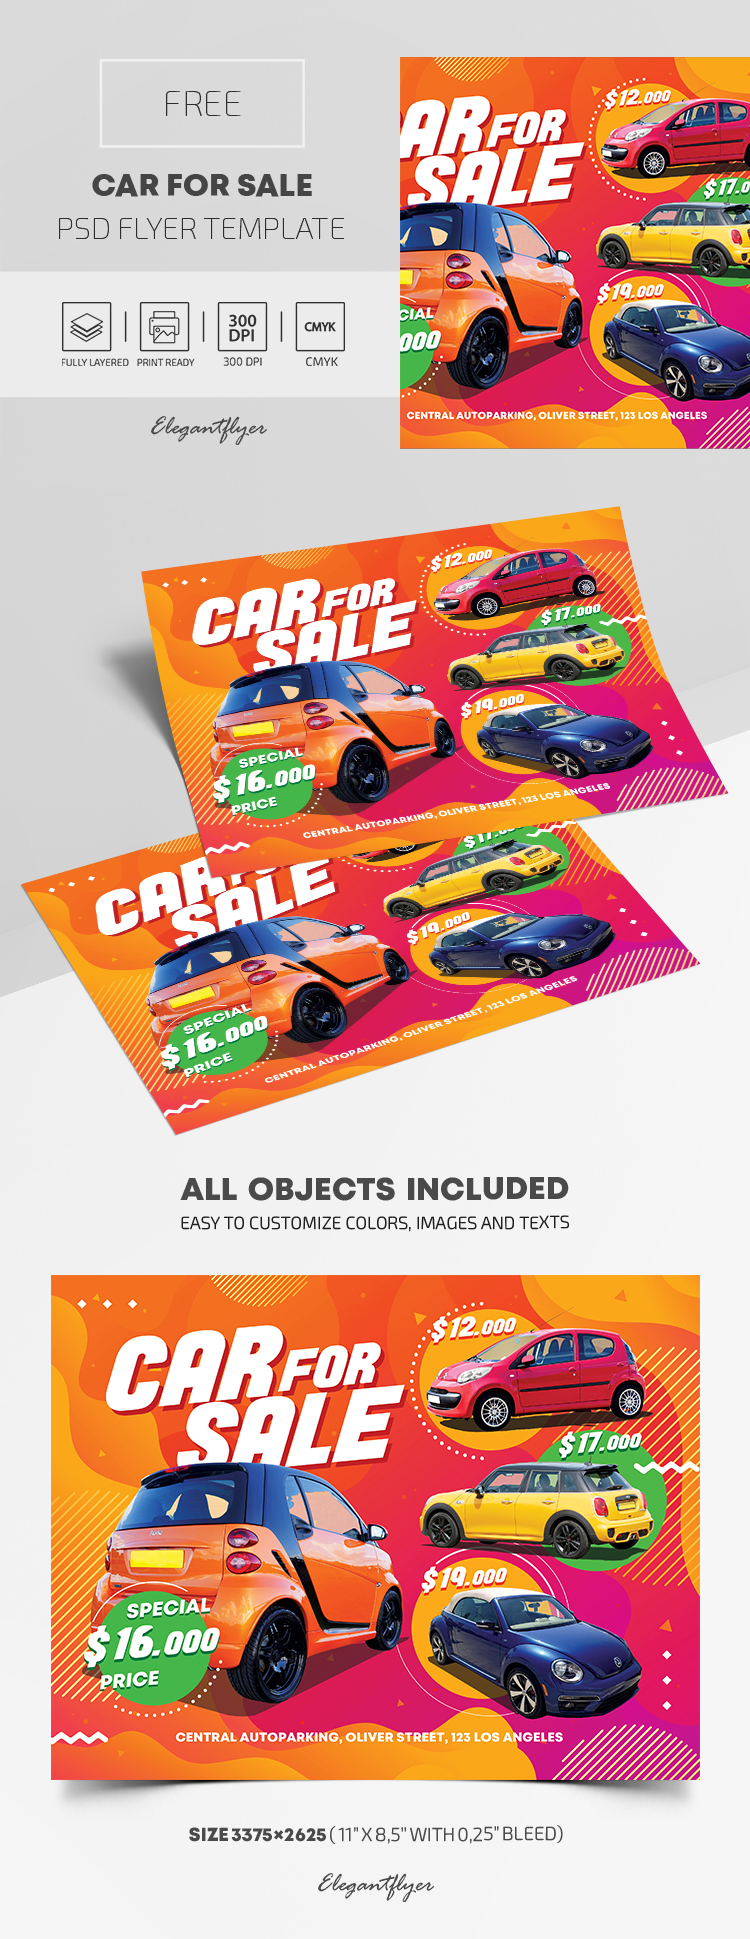 Car For Sale – Free PSD Flyer Template